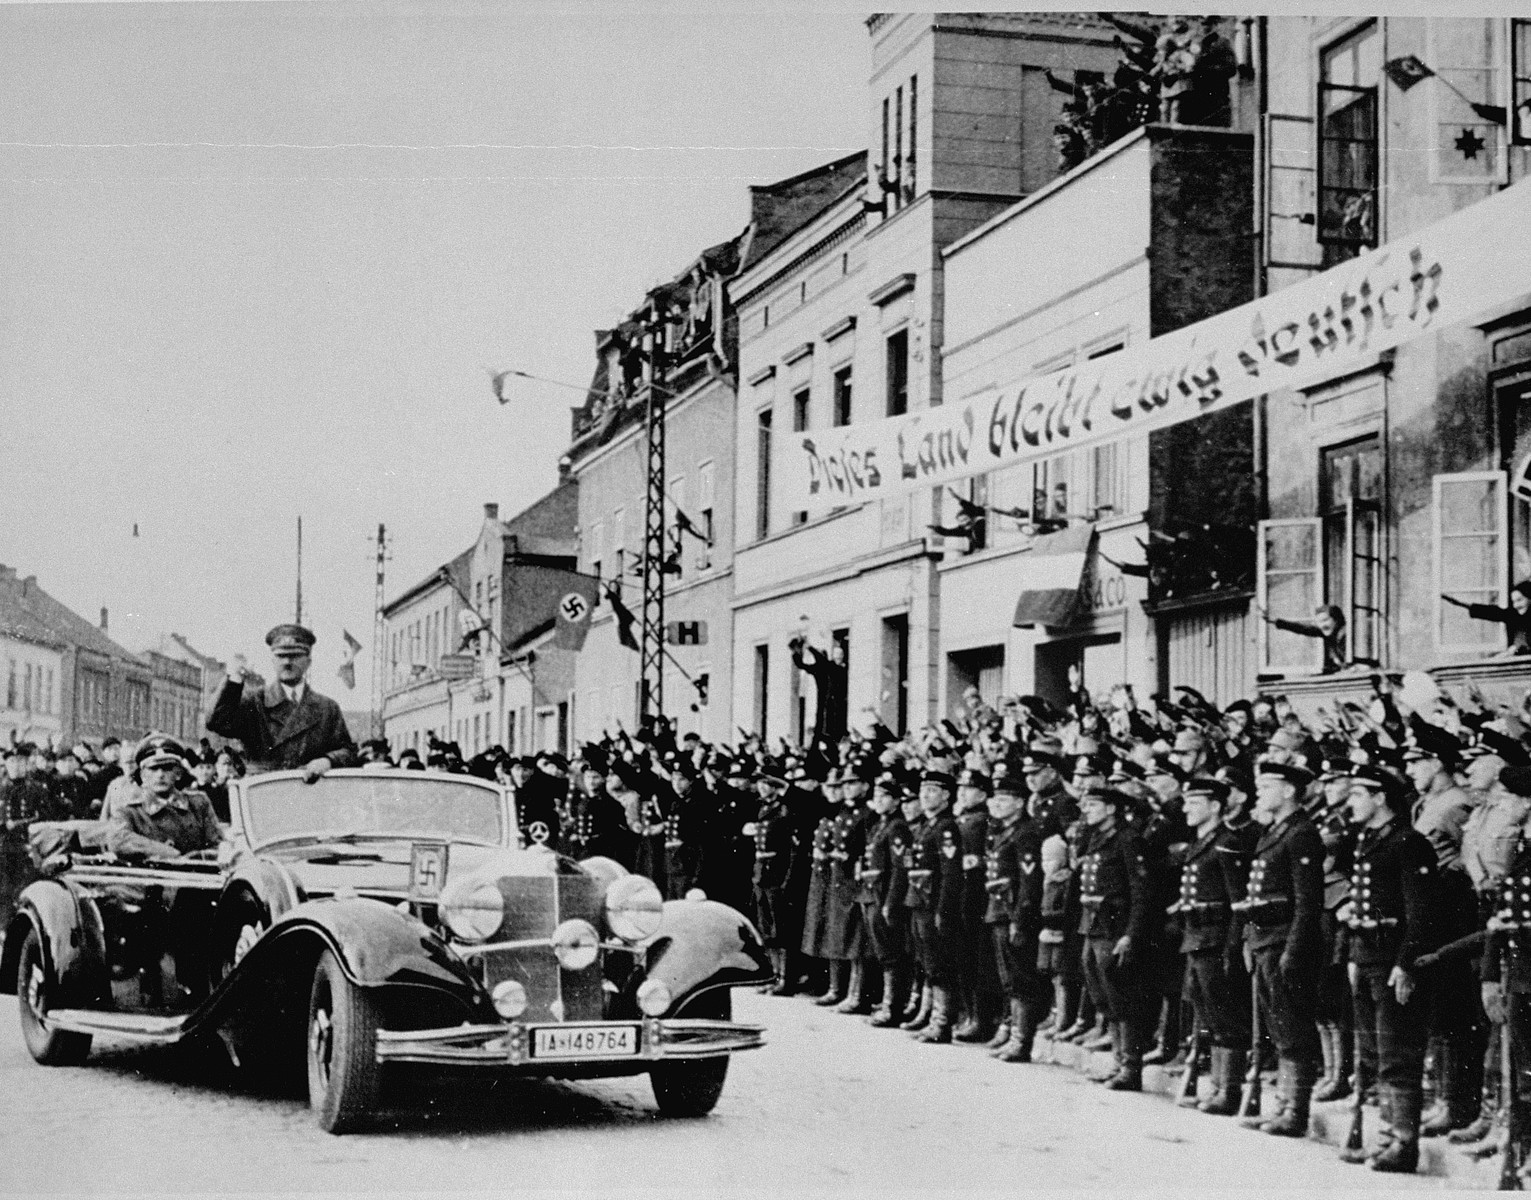 Adolf Hitler arrives in Memel the day after the city's annexation to the Reich.  A part of East Prussia since the 16th century, Memel and its environs were removed from Germany in 1919 and annexed to Lithuania in 1923 as as autonomous area.  However, after 1933, Hitler agitated for it to be returned to the Reich and the Nazi Party gradually seized control of local politics through the faction controlled by Dr. Ernst Neumann.  Germany eventually annexed Memel and its forces entered the region and city on 22 March 1939.  Most of the Lithuanian and Jewish population fled the city before the German takeover.